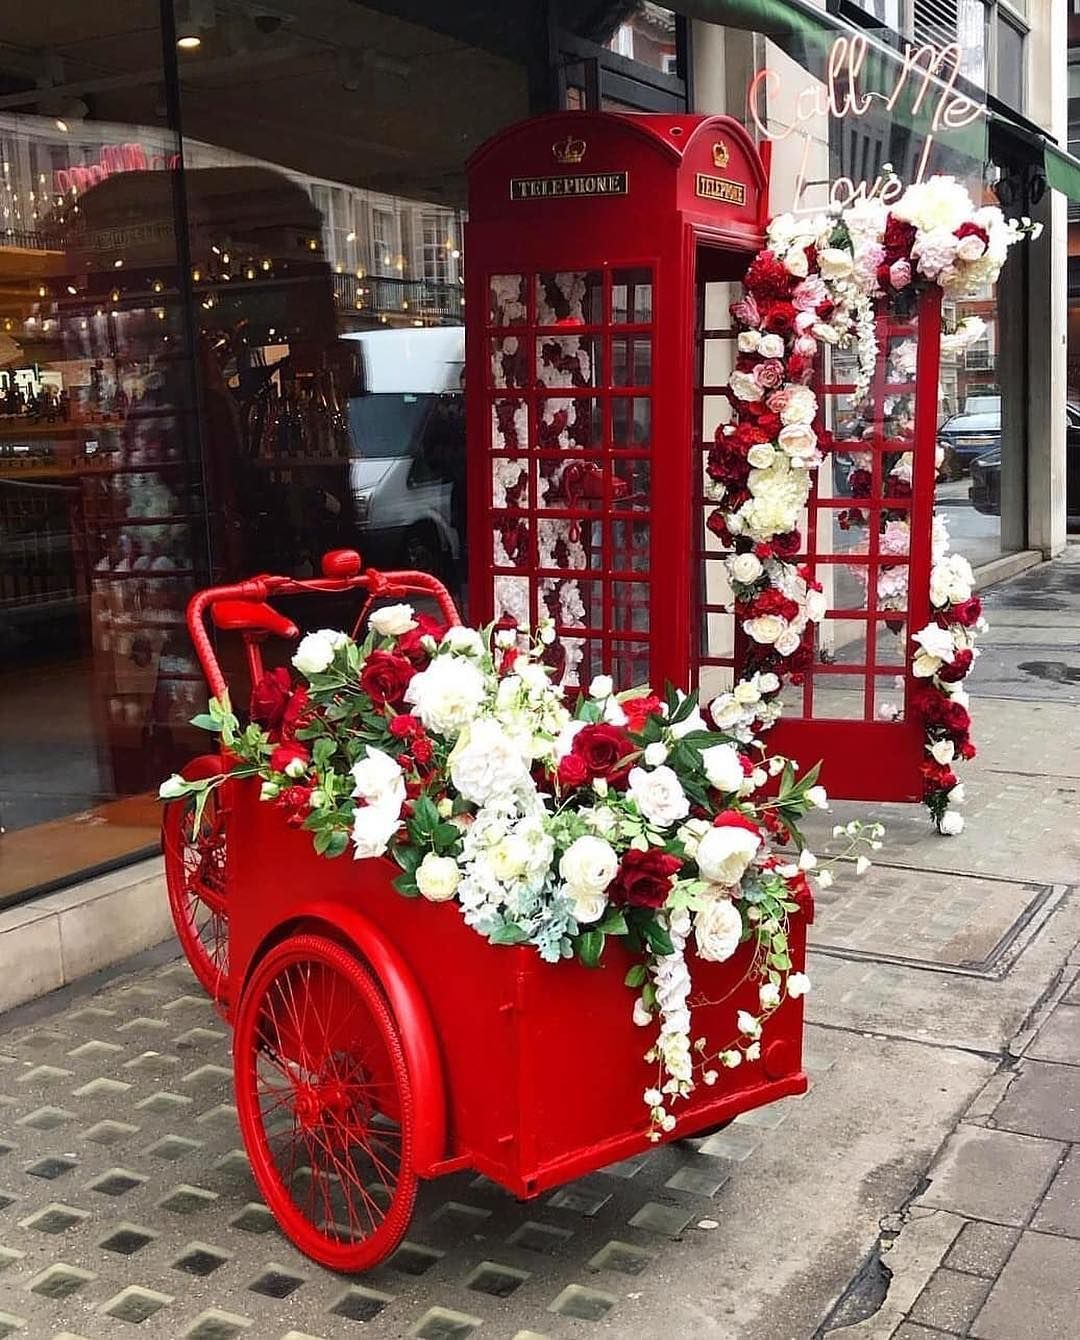 Follow Londonvisitof For Amazing London Photos Hedonism Wines Photo B London Photos Most Romantic Happy Weekend